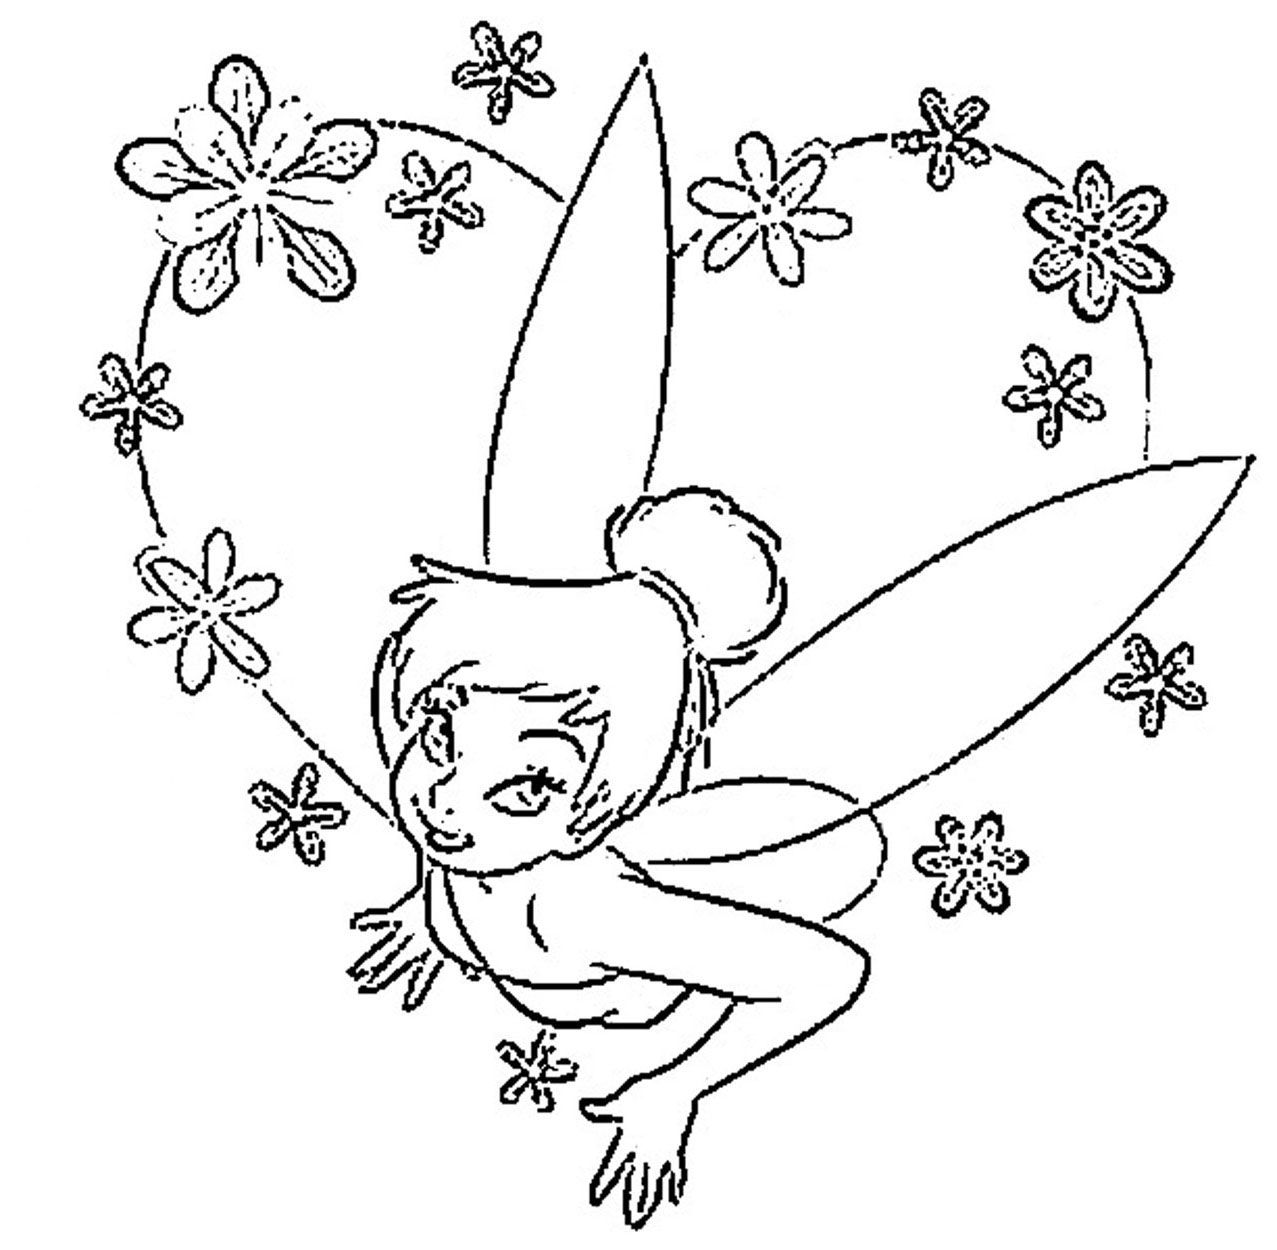 Free Printable Tinkerbell Coloring Pages For Kids | Tinkerbell, Free ...